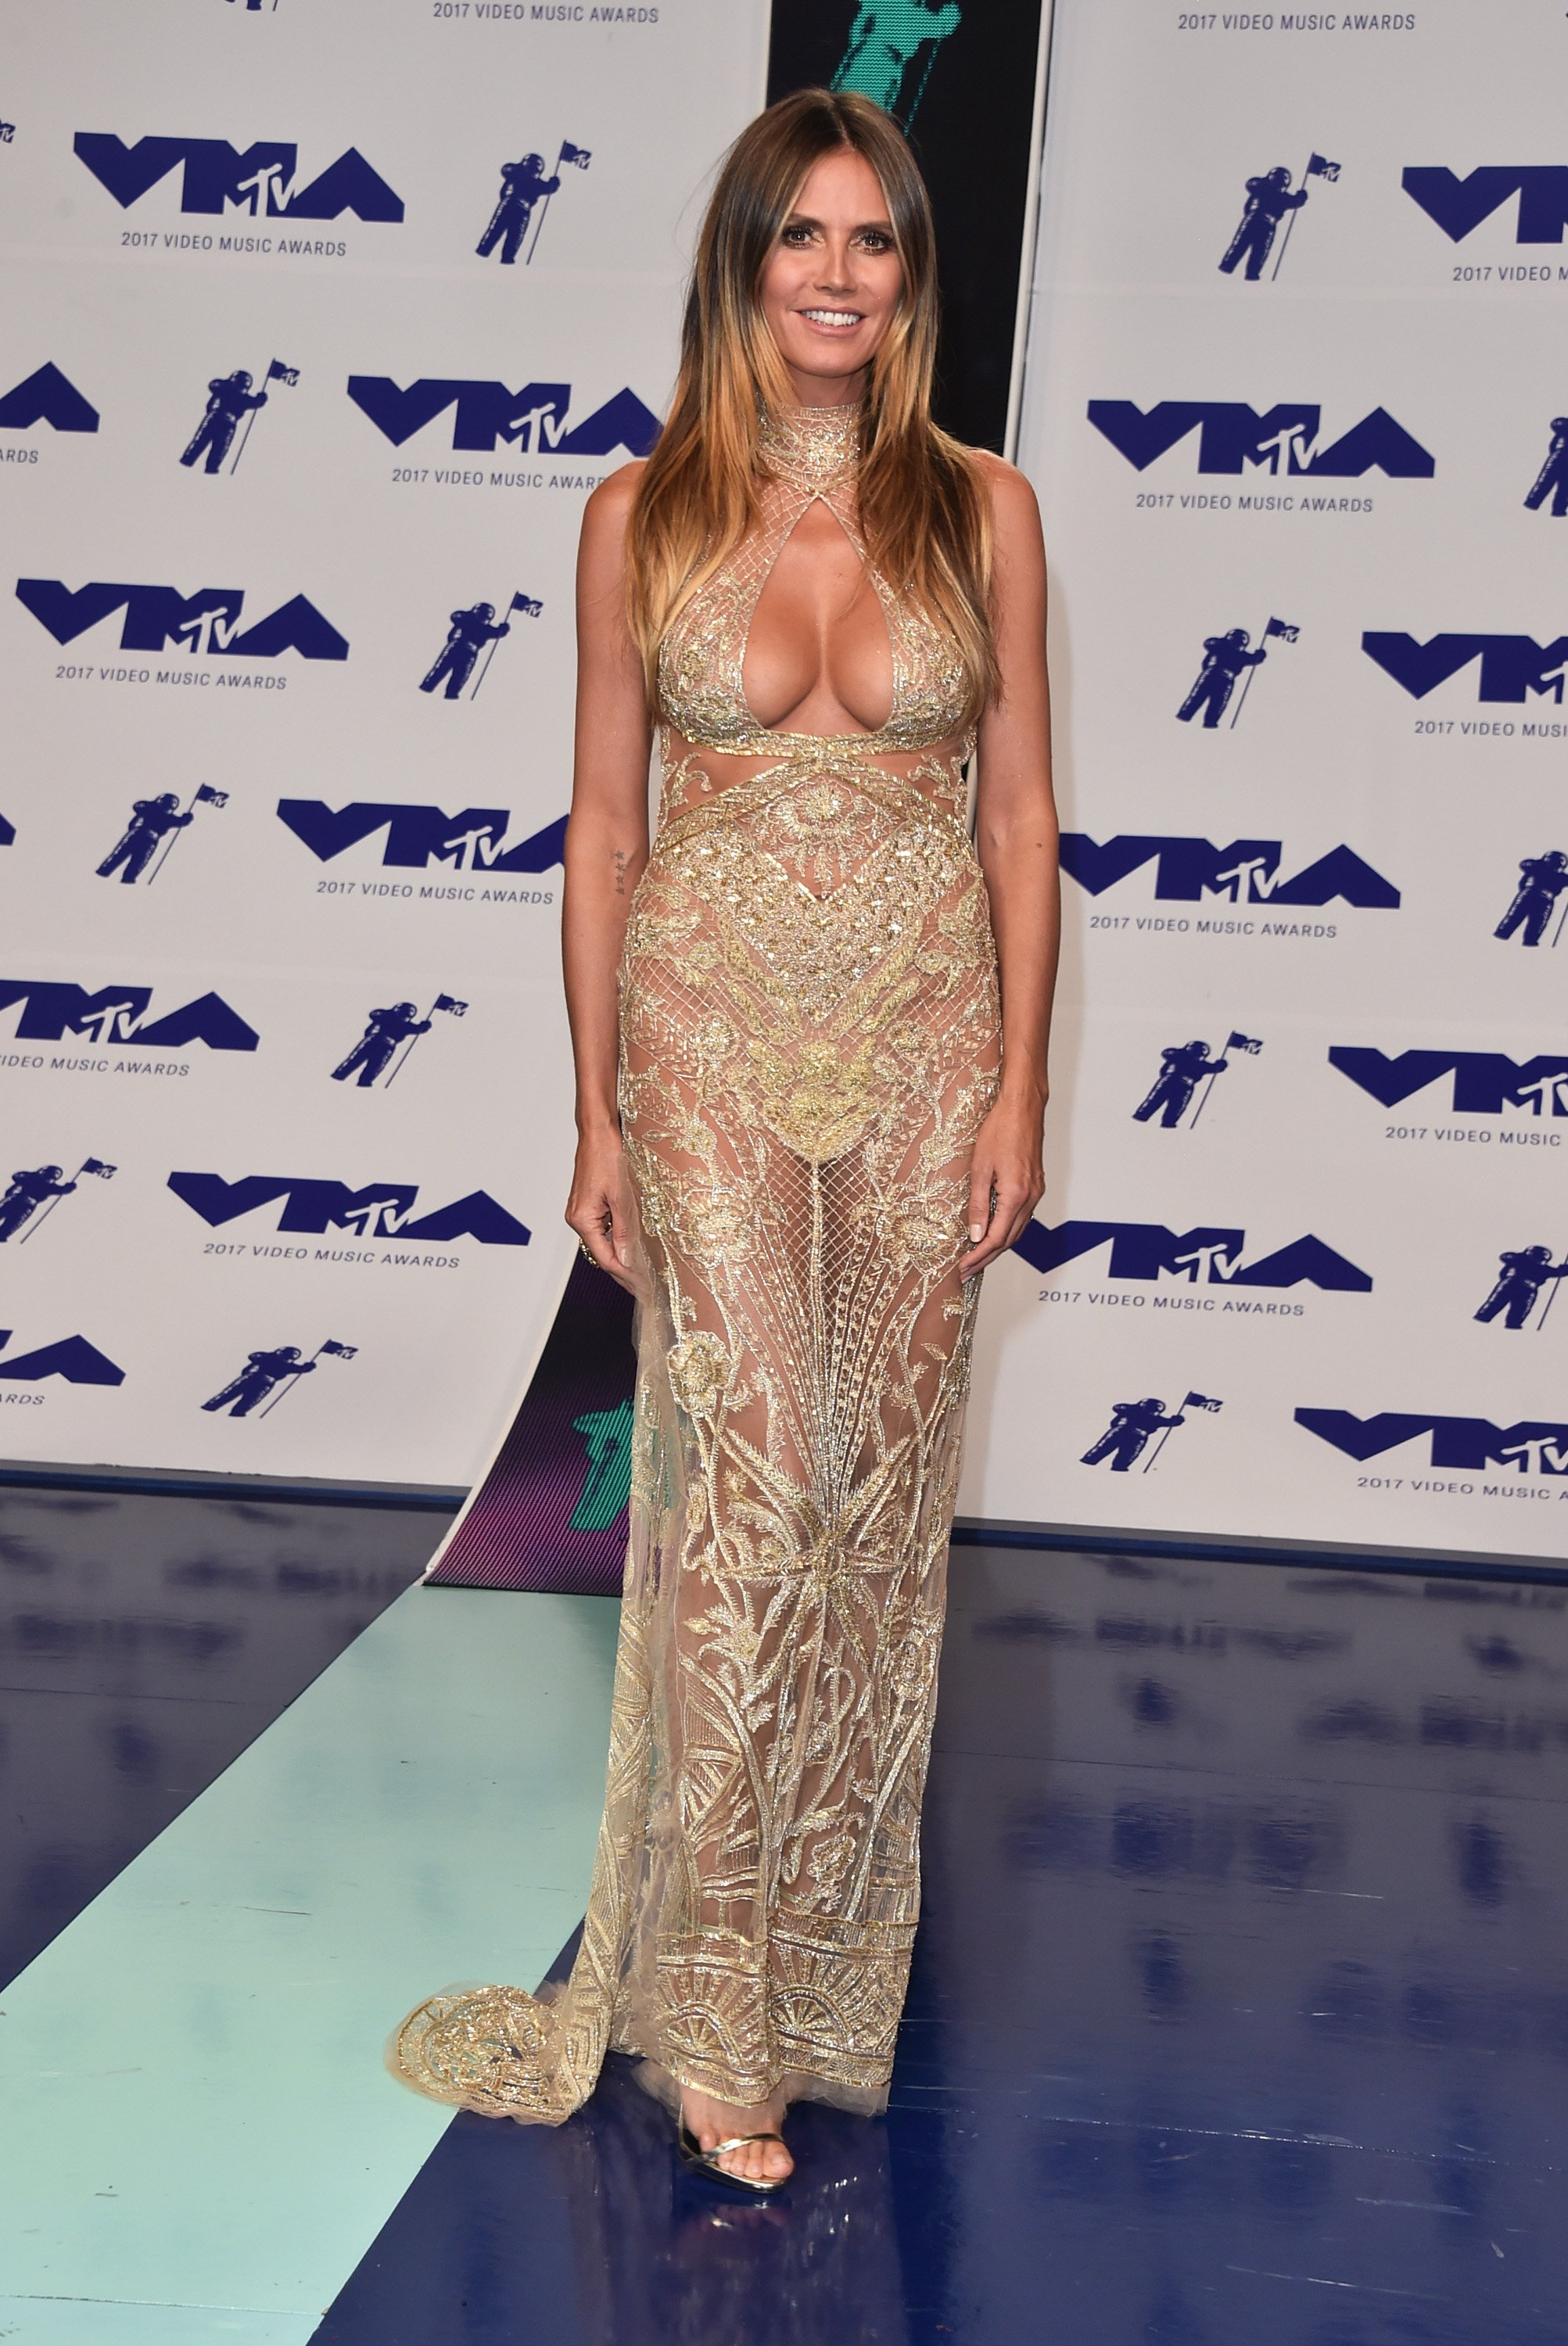 Heidi Klum attneds the MTV Video Music Awards in Inglewood, California on August 27, 2017 | Photo: Getty Images